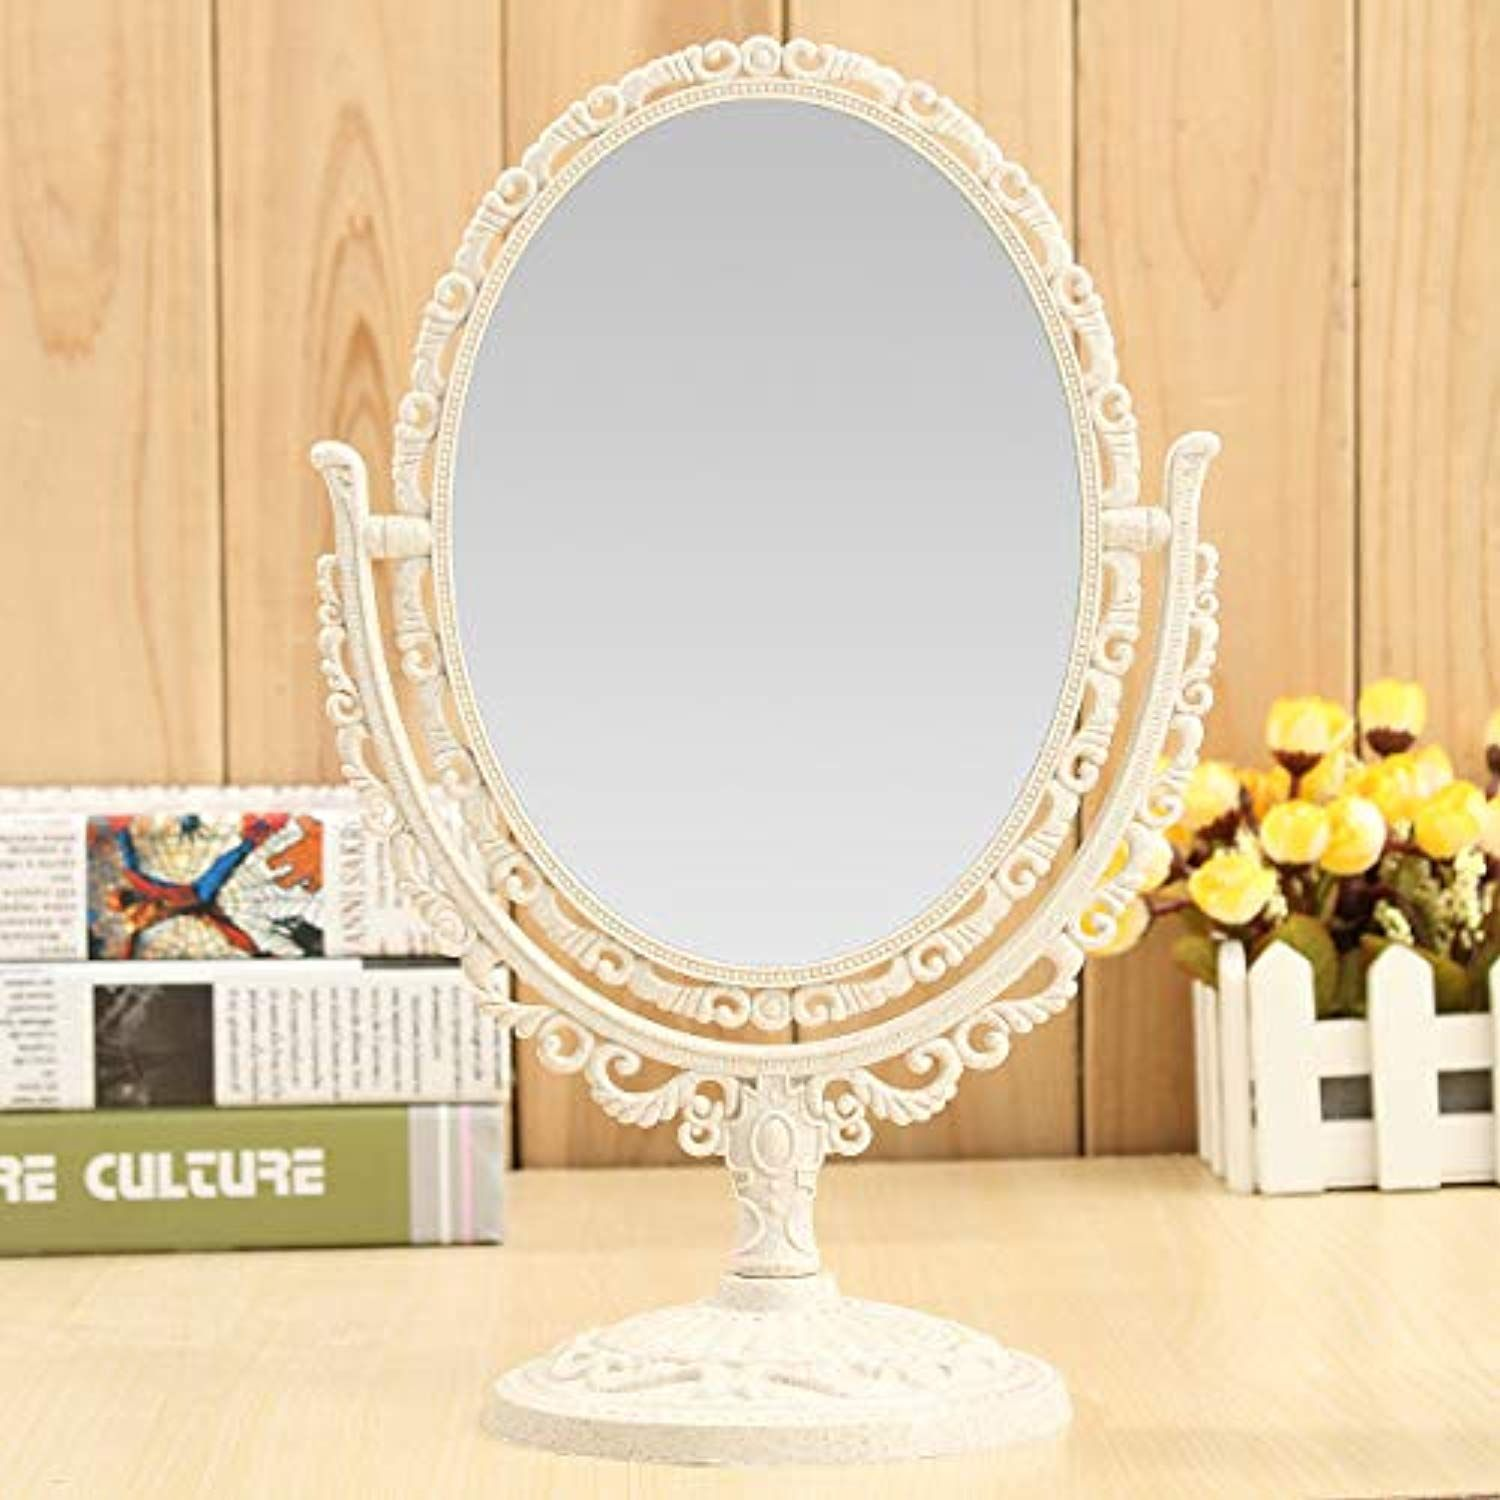 Desktop Double Sided Makeup Rotatable Mirror Oval Round Heart Shaped Cosmetic Mirrors Home Decor Makeup Tools Mirrors 03 1 X Mirror Check This Awesom